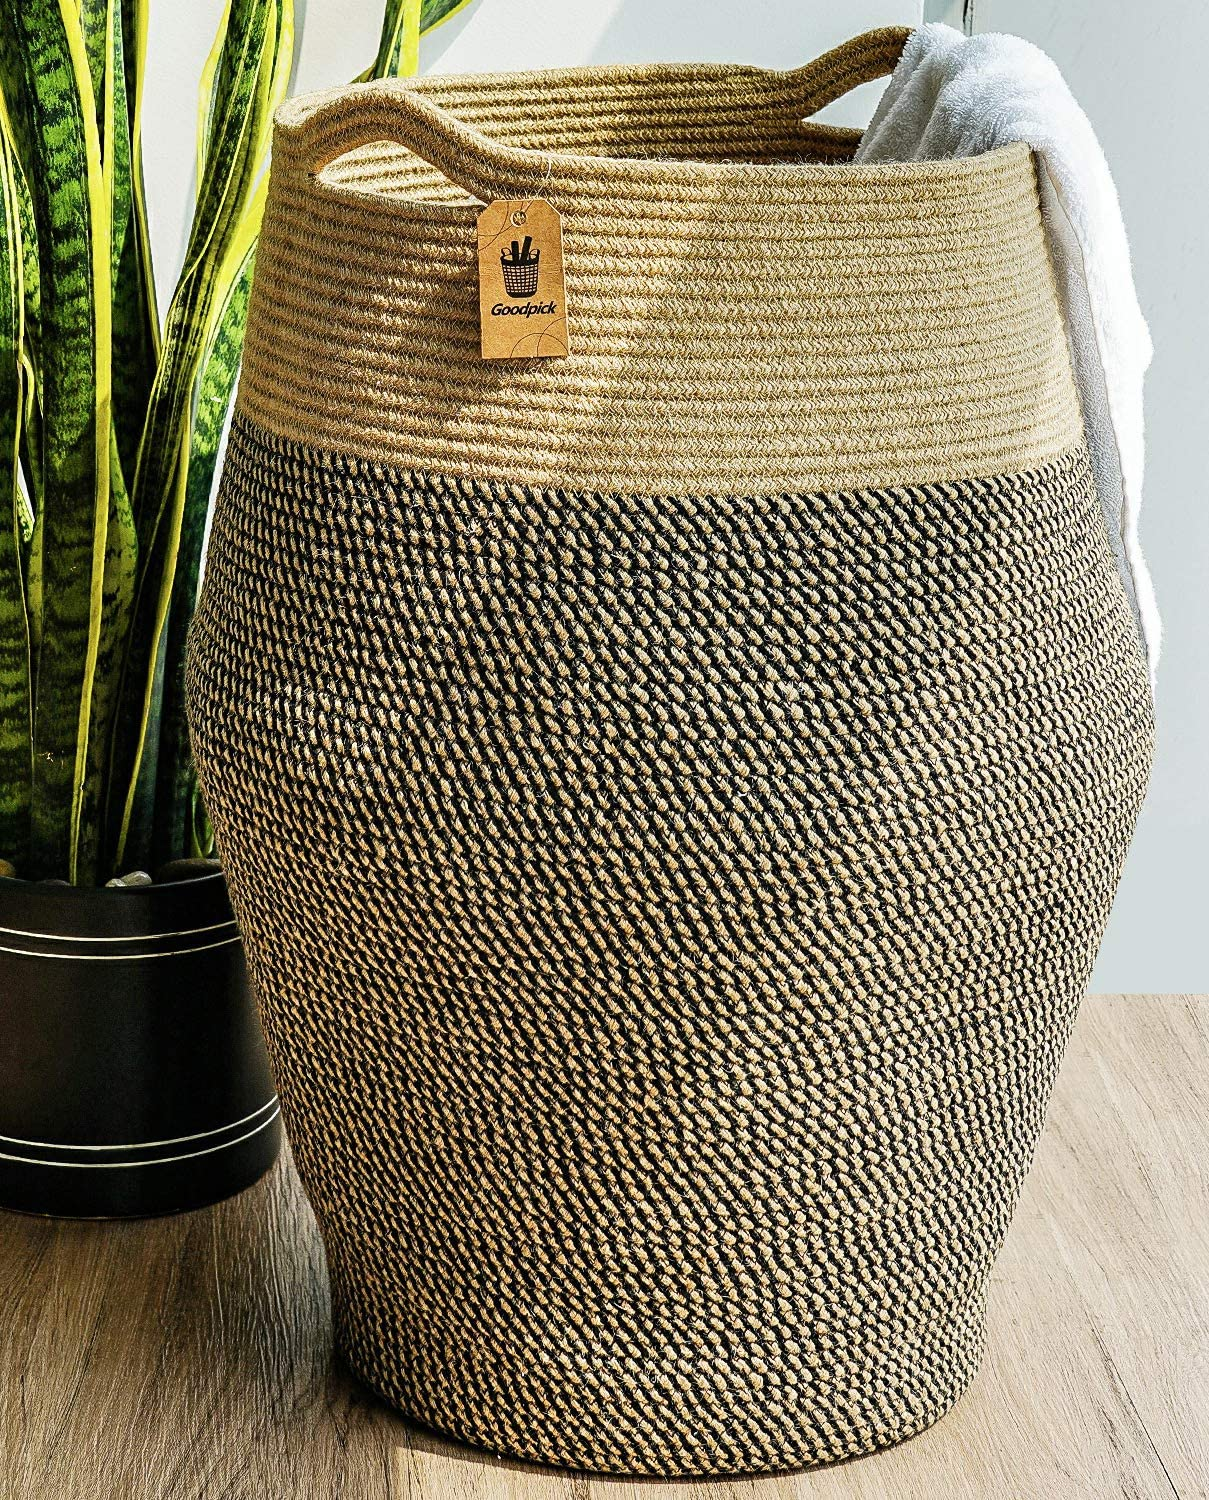 "Goodpick Tall Laundry Hamper | Woven Jute Rope Dirty Clothes Hamper Modern Hamper Basket Large in Laundry Room, 25.6"" Height"